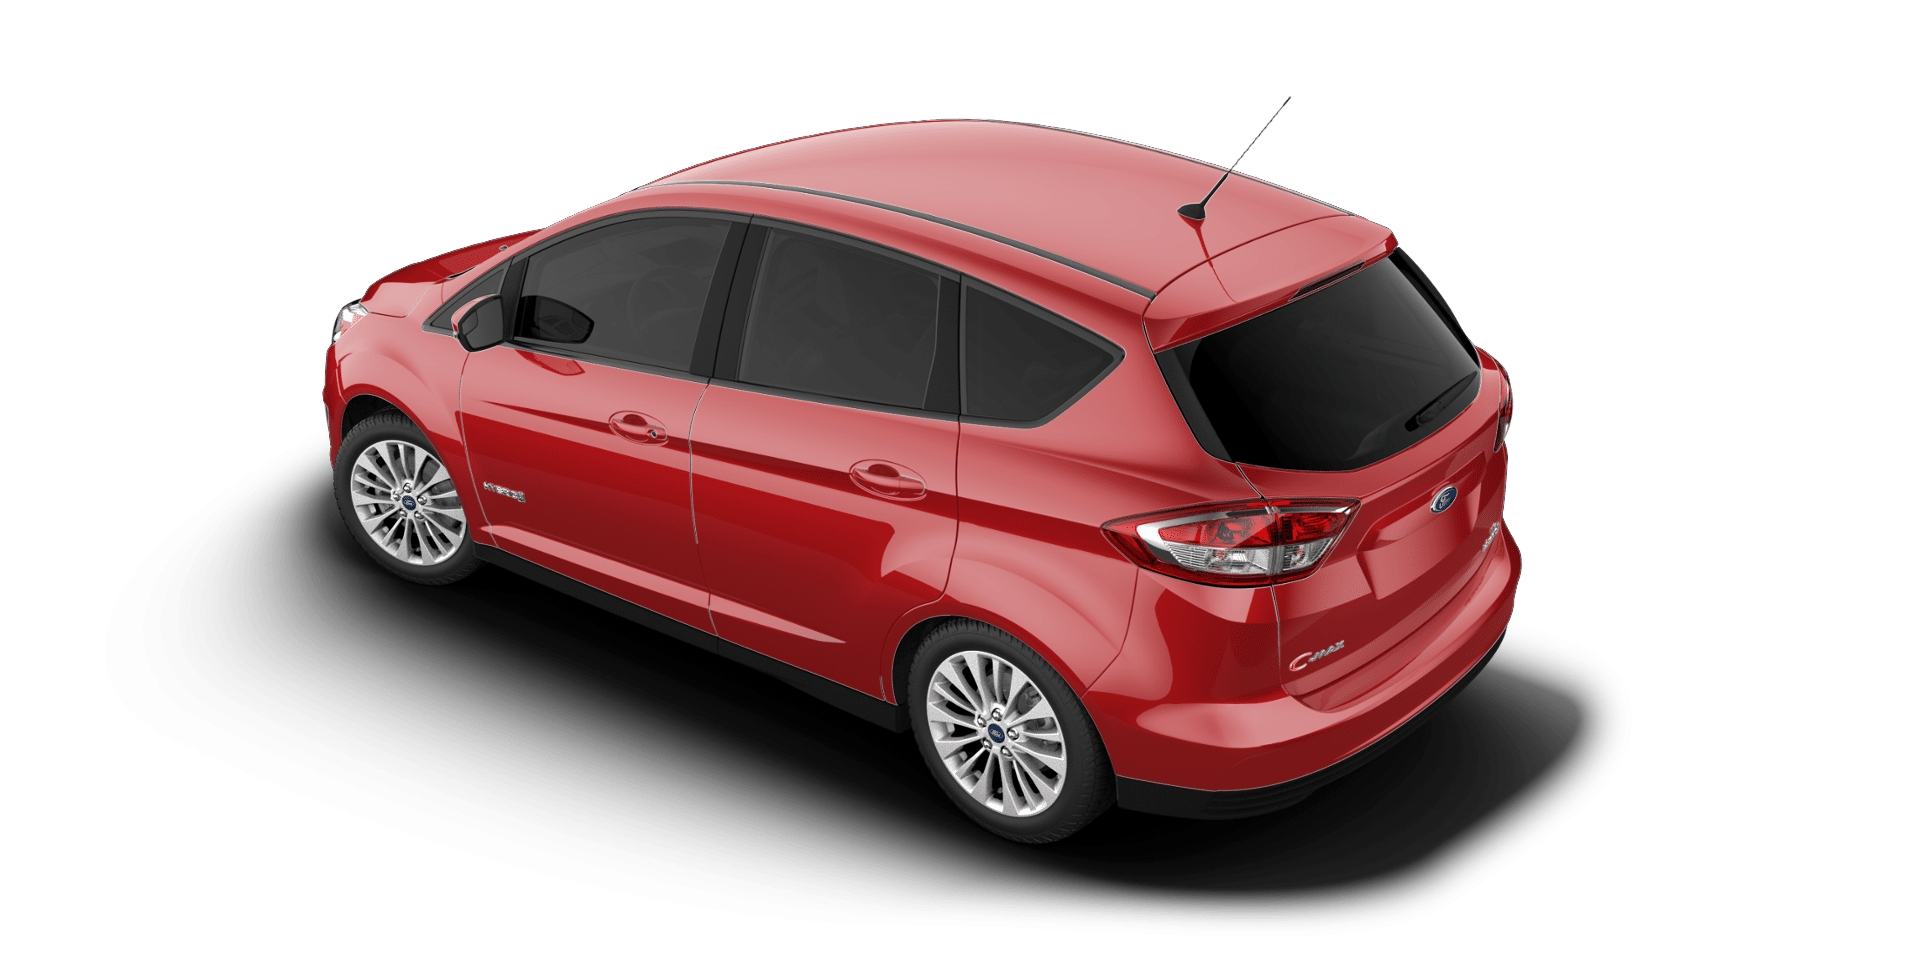 ford c max hybrid titanium 2017 exterior image gallery pictures photos. Black Bedroom Furniture Sets. Home Design Ideas